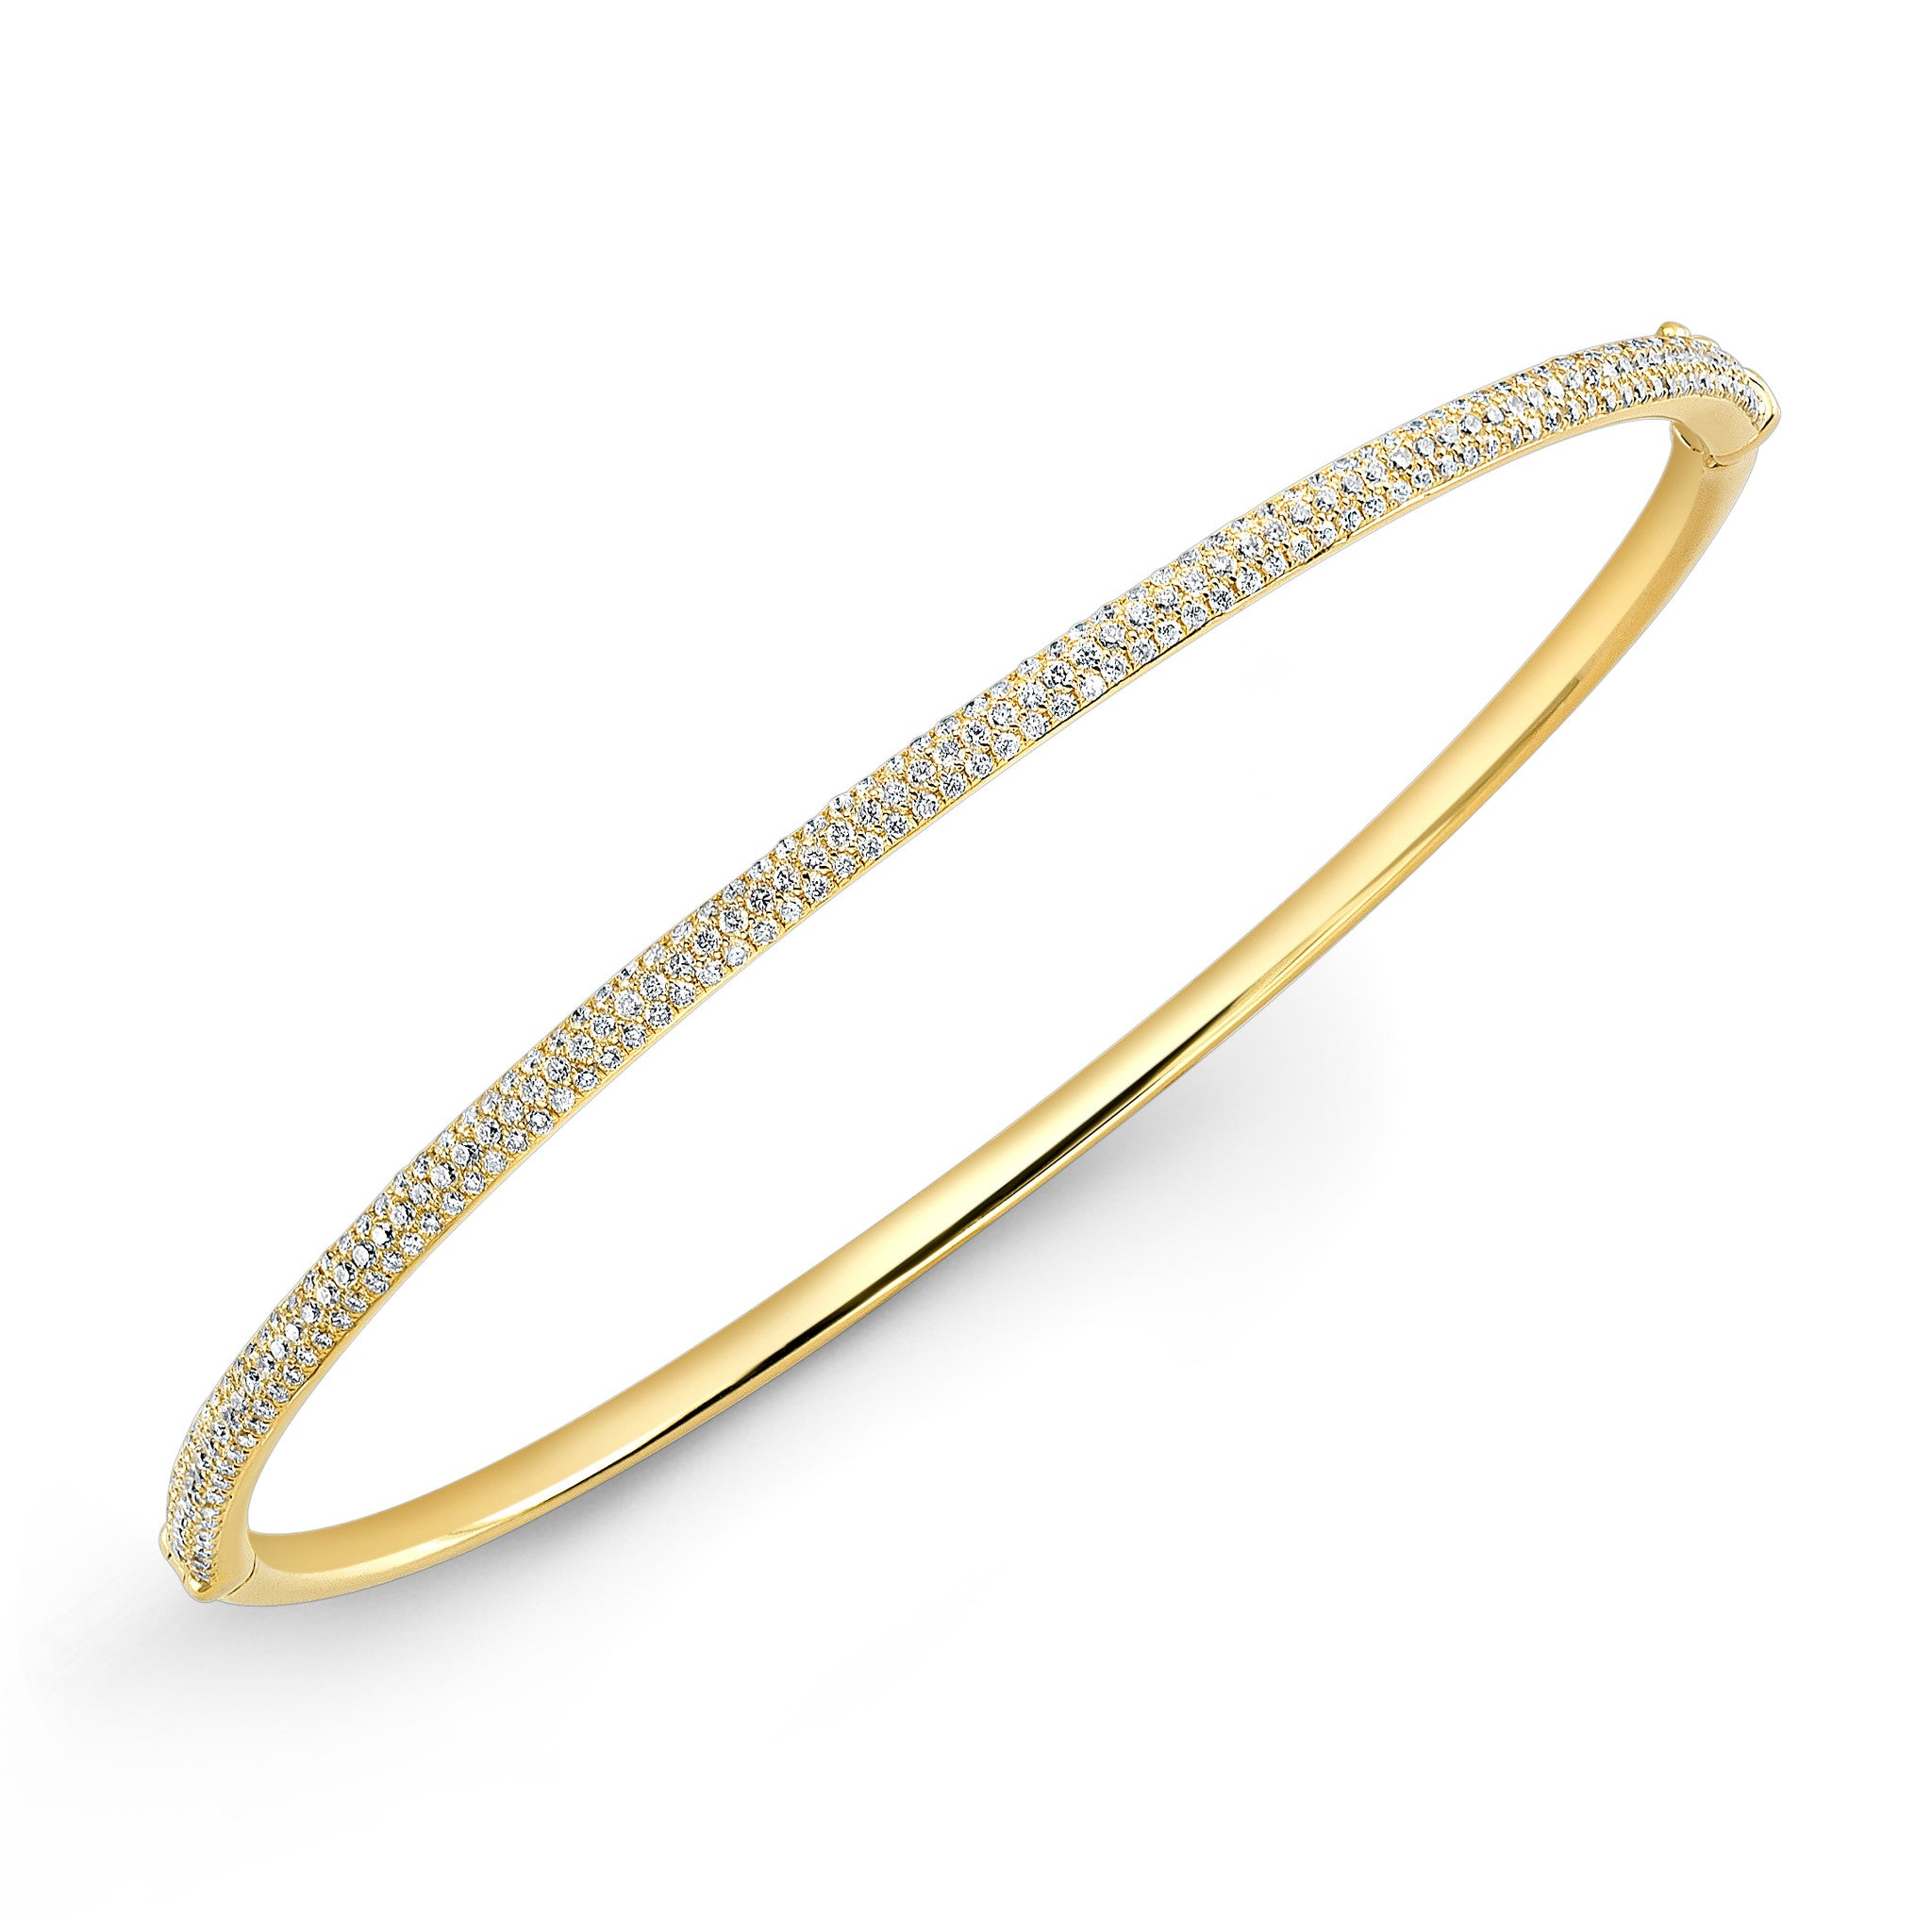 nouvelle at bracelet bracelets org bague bangles jewelry pave id bangle diamond la j